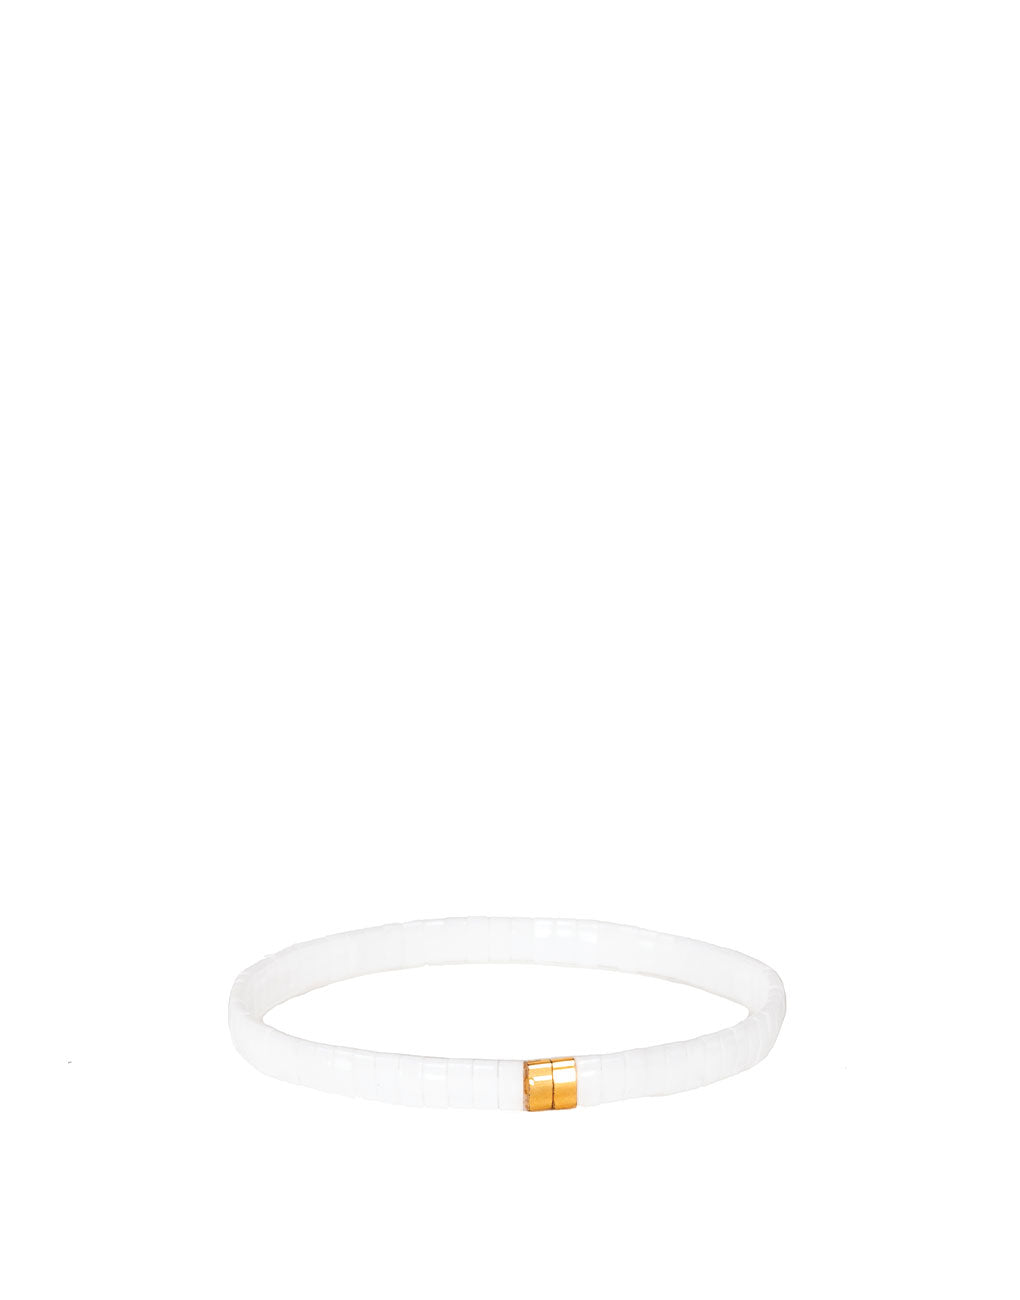 Flat Beaded Bracelet - White | The Little Market